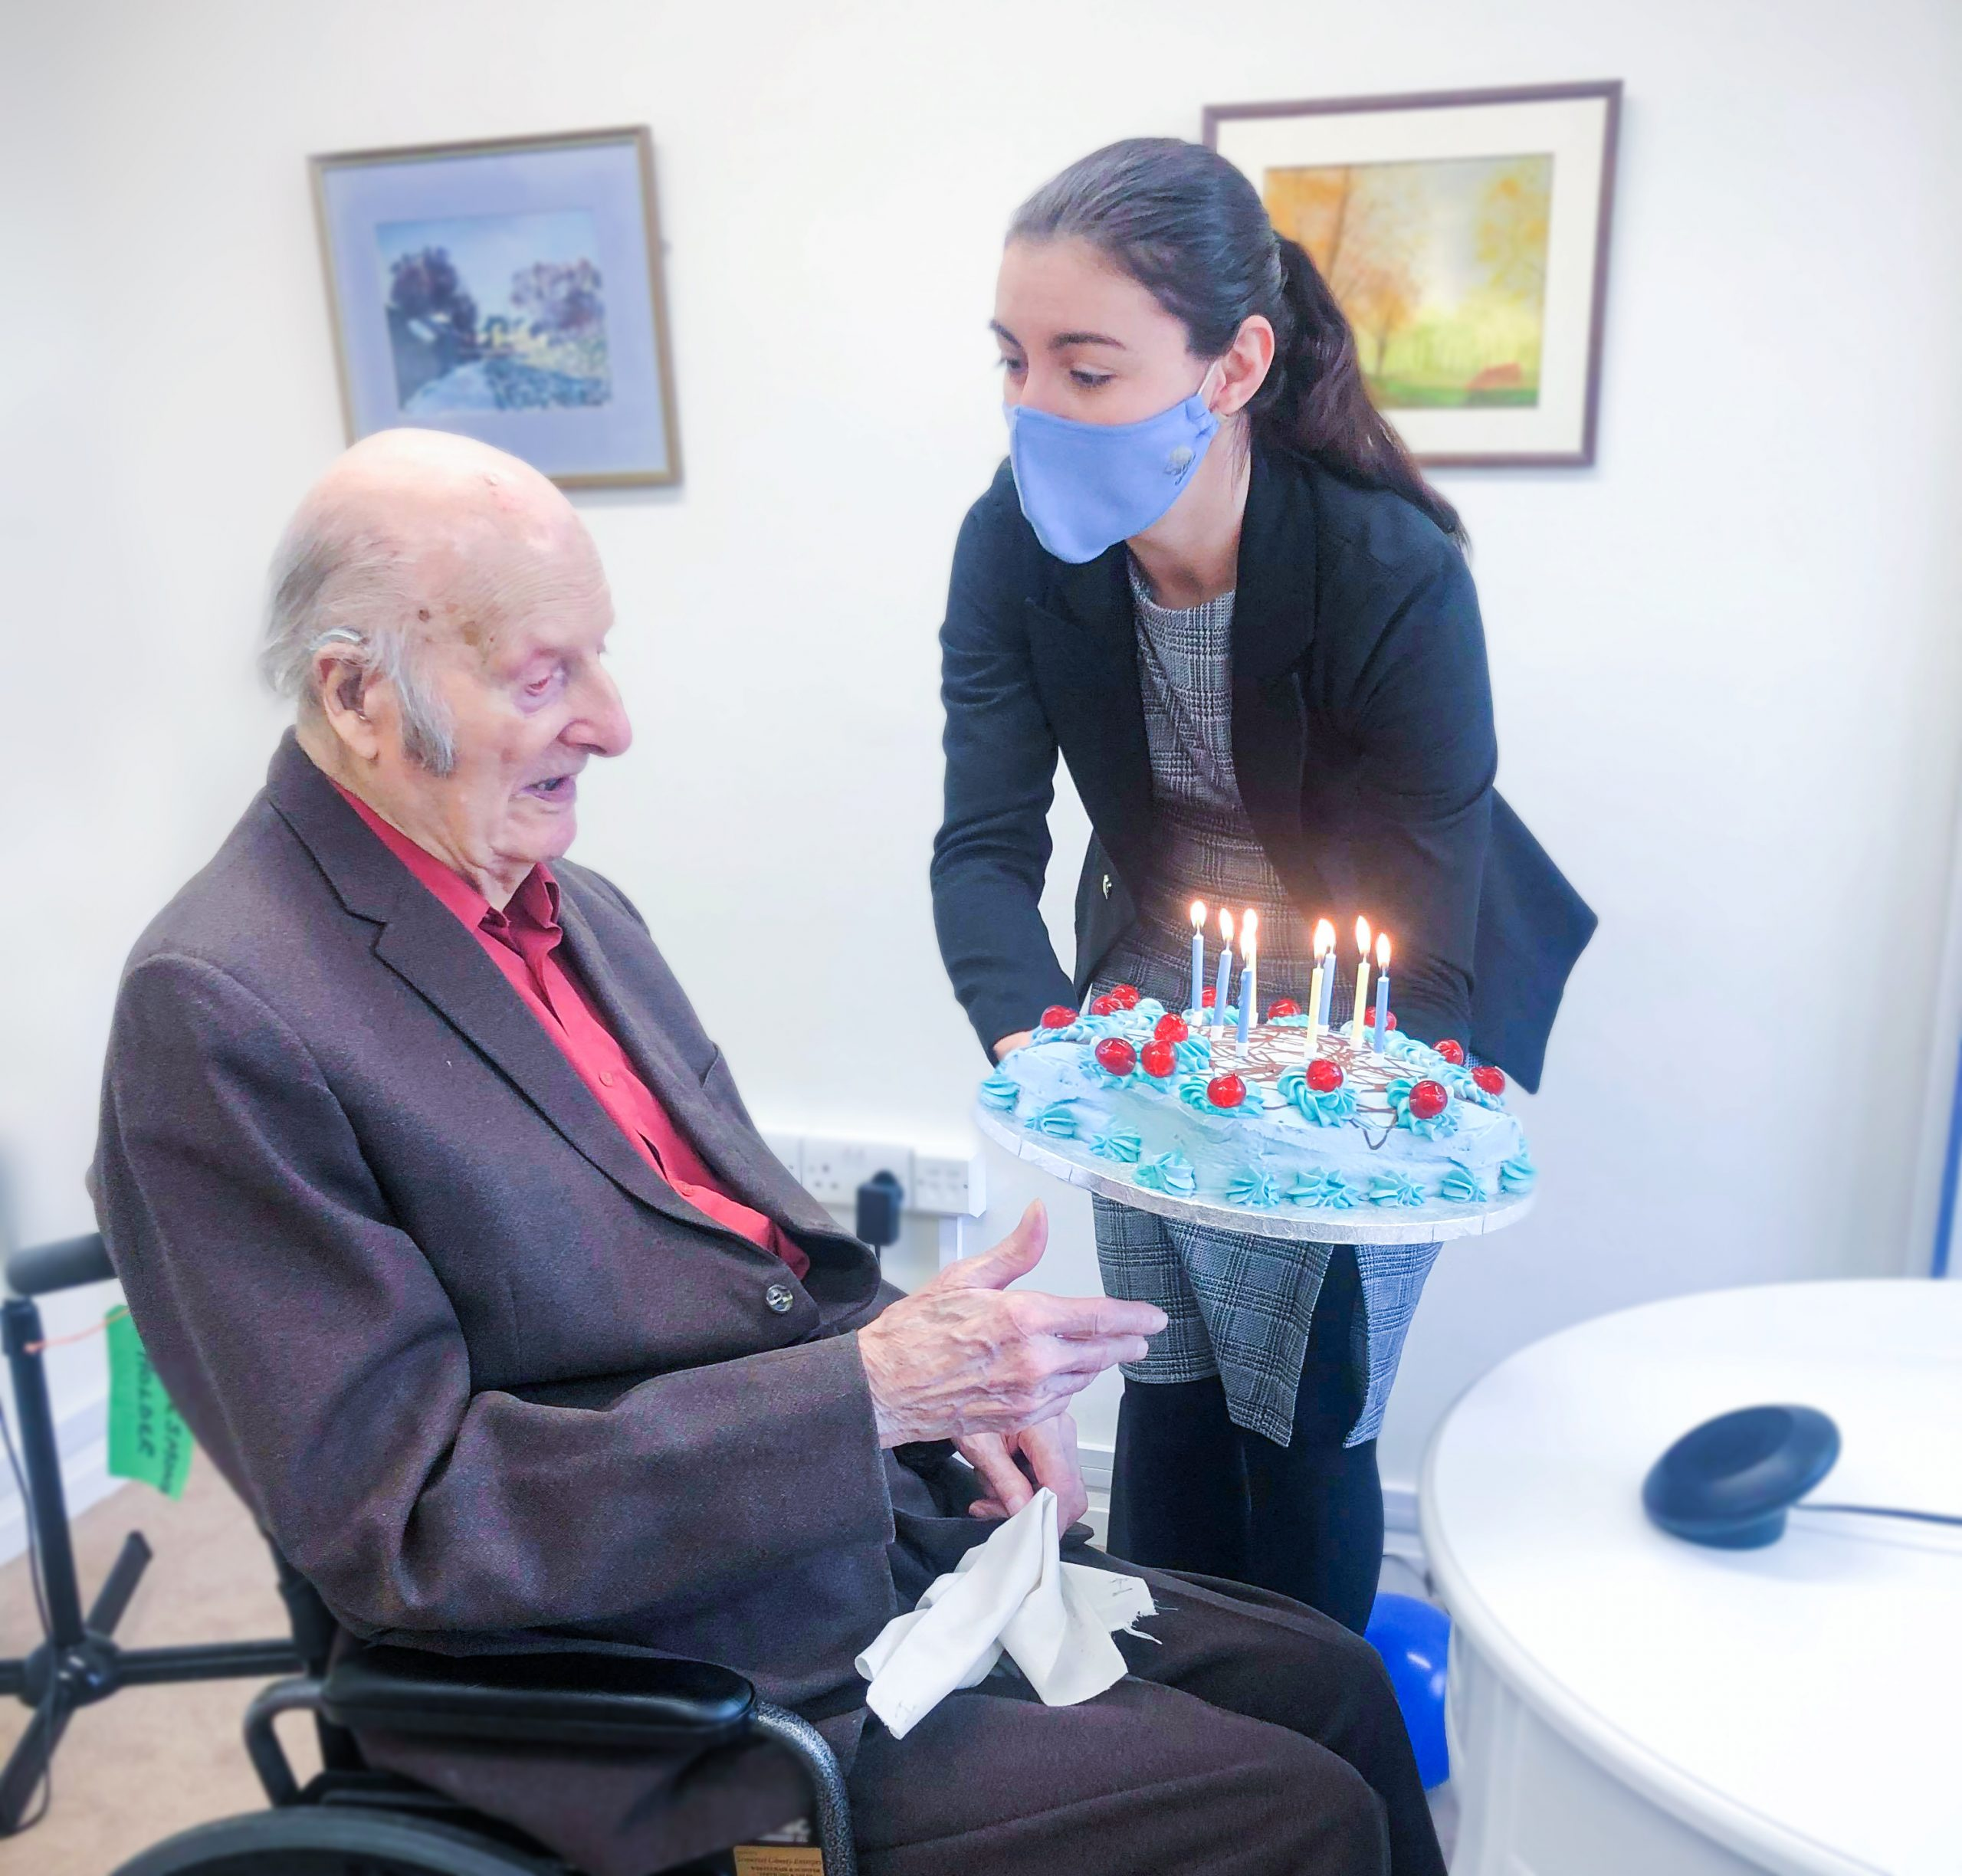 Care Home Manager Alina presenting Desmond with his birthday cake